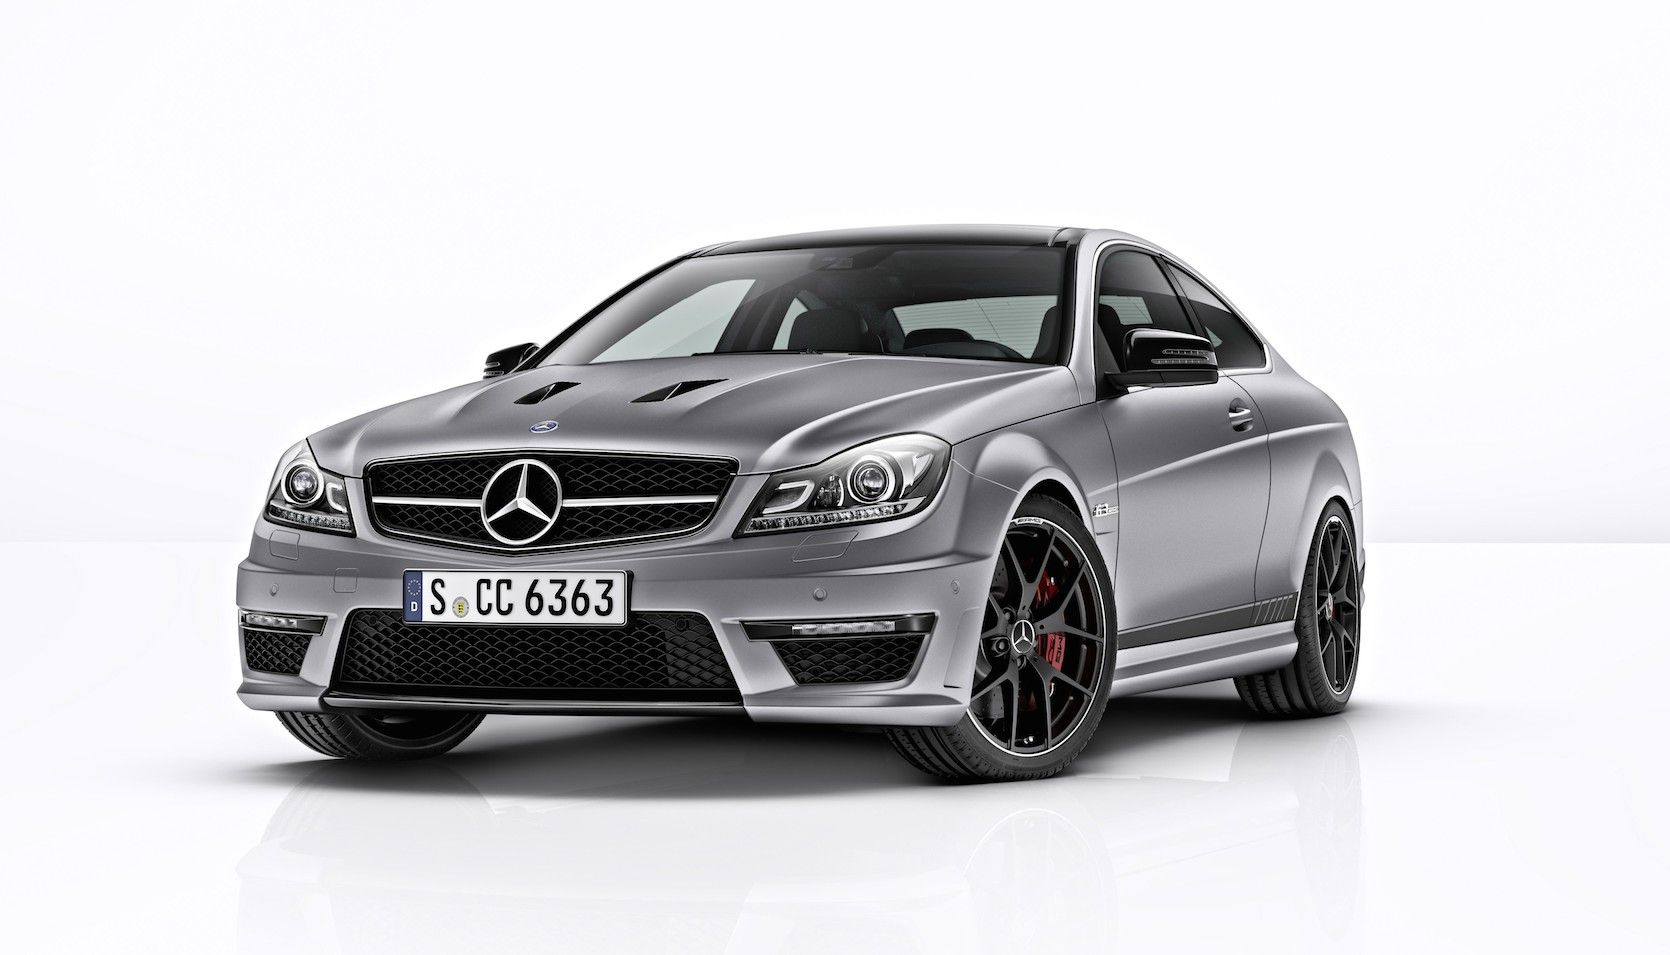 Mercedes-Benz C63 AMG 507 special offer announced - http://www.caradvice.com.au/293690/mercedes-benz-c63-amg-507-special-offer-announced/